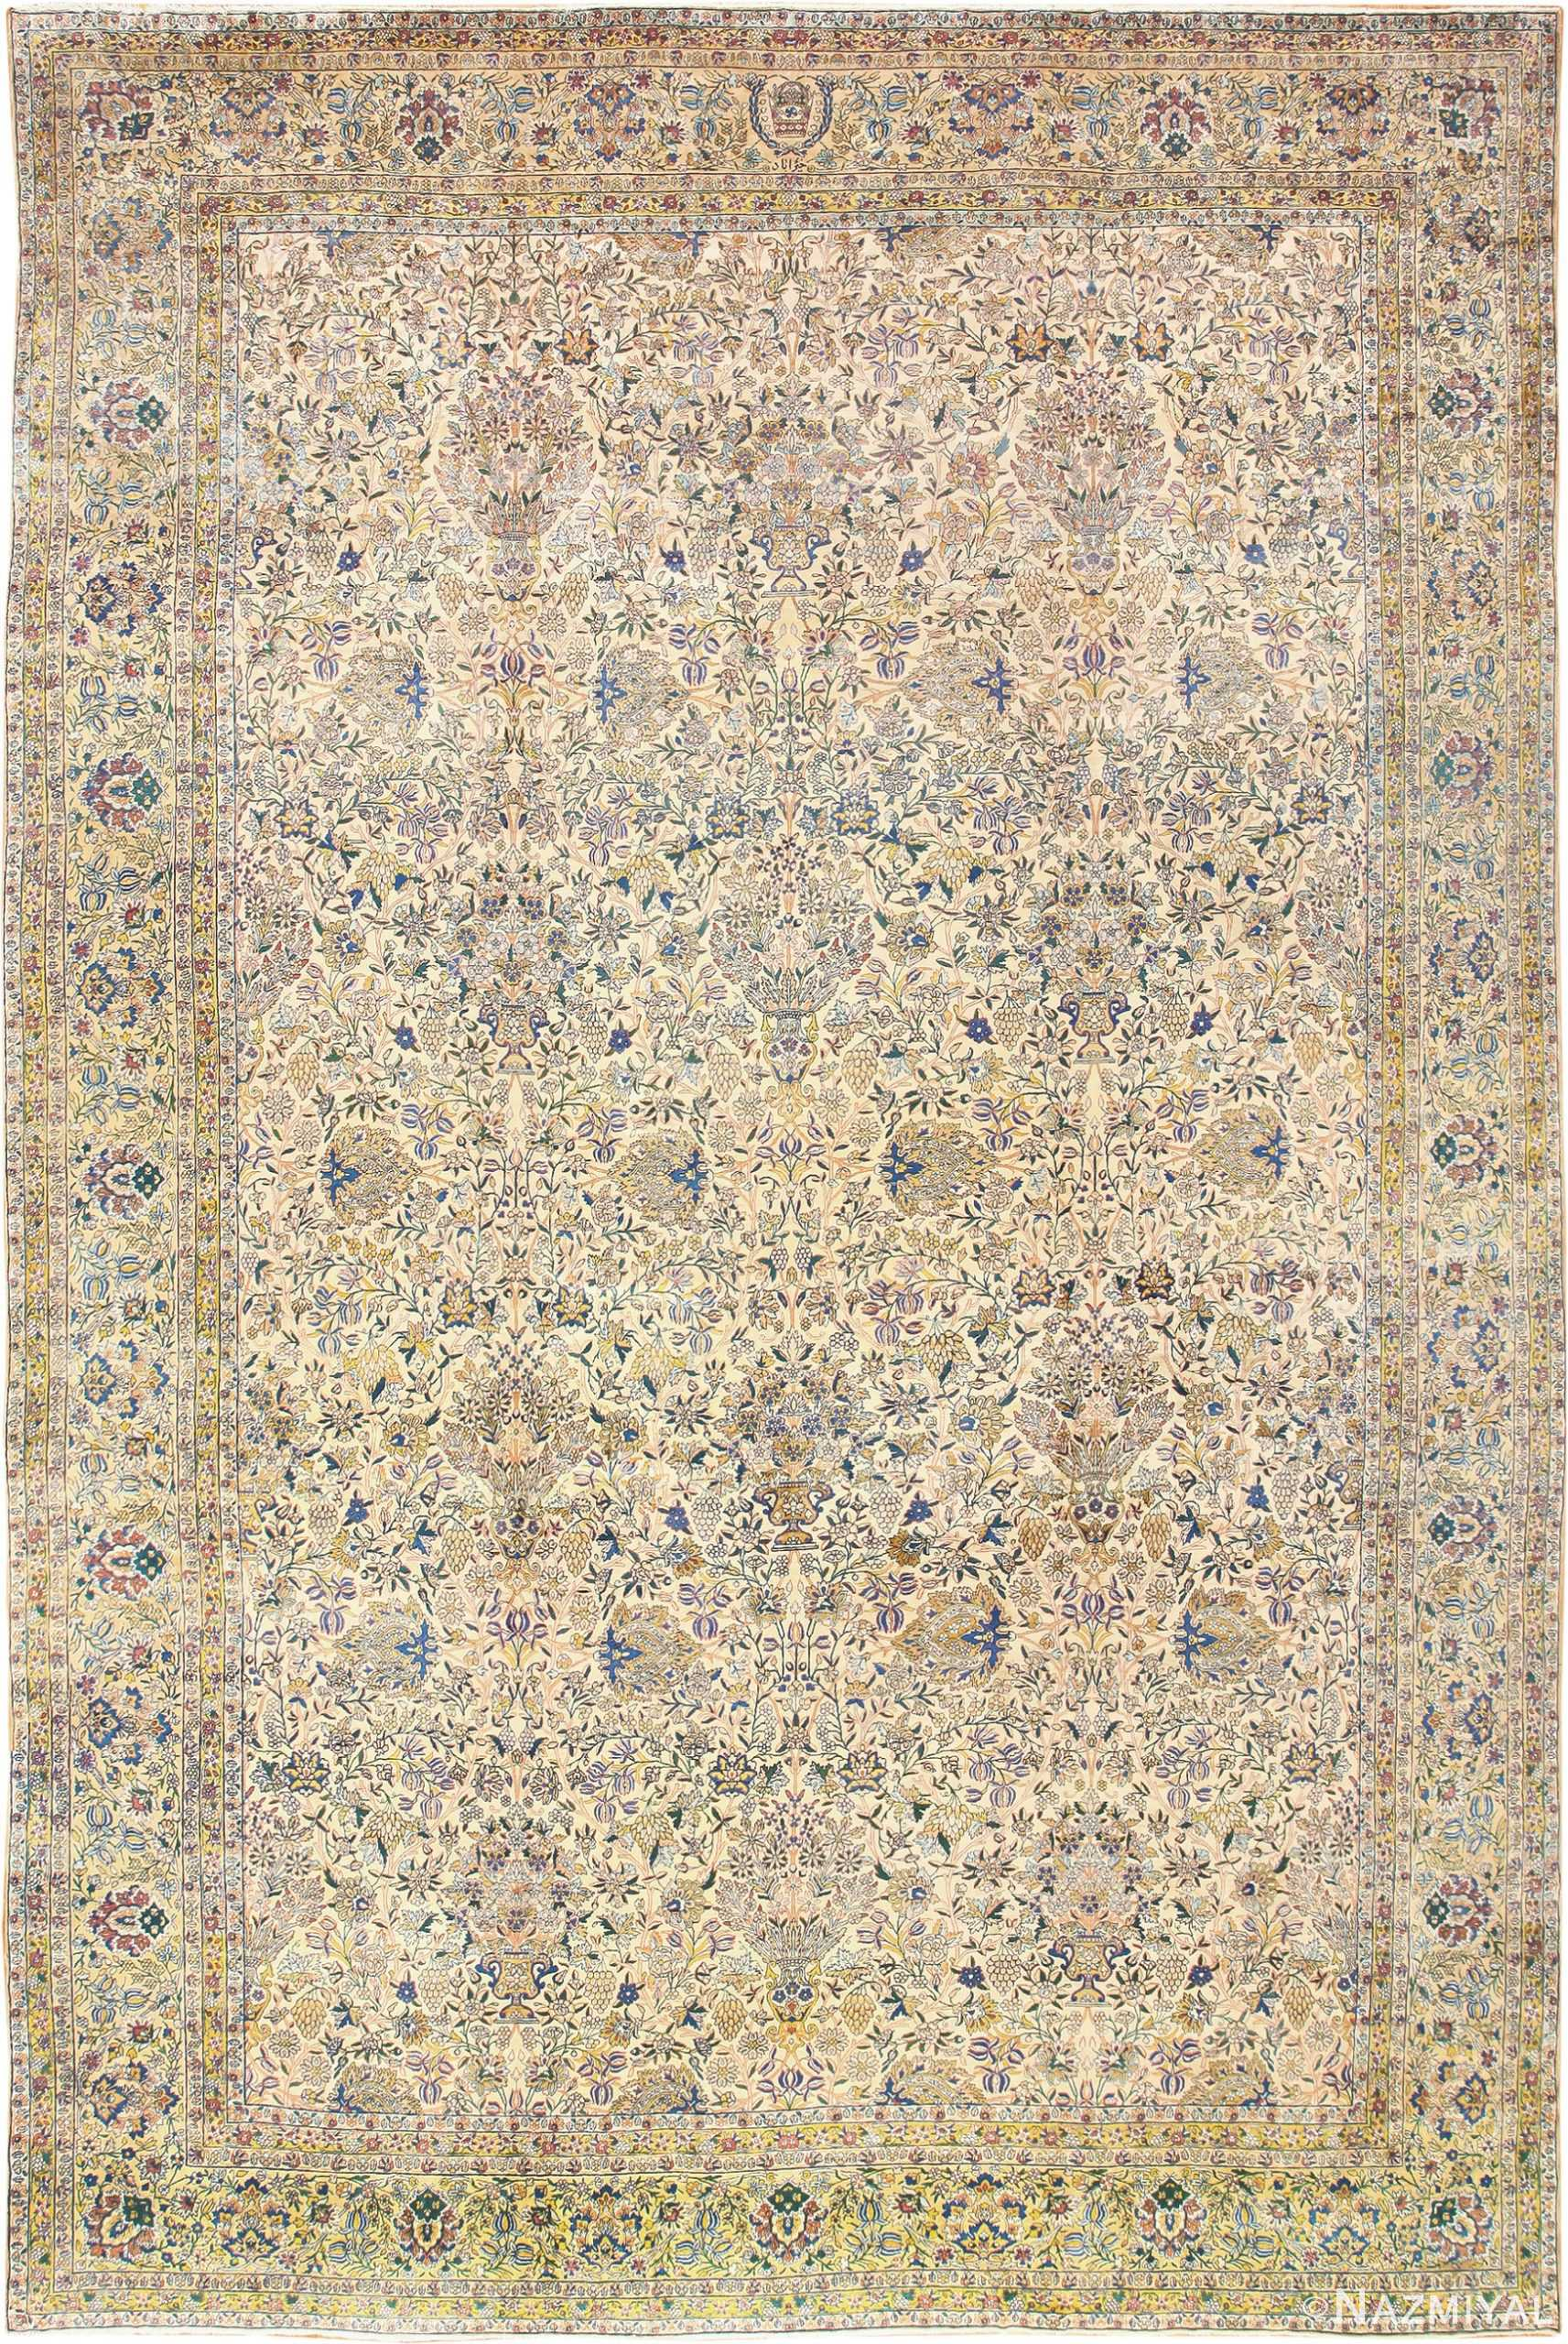 Large Antique Fine Persian Kerman Carpet 50405 by Nazmiyal